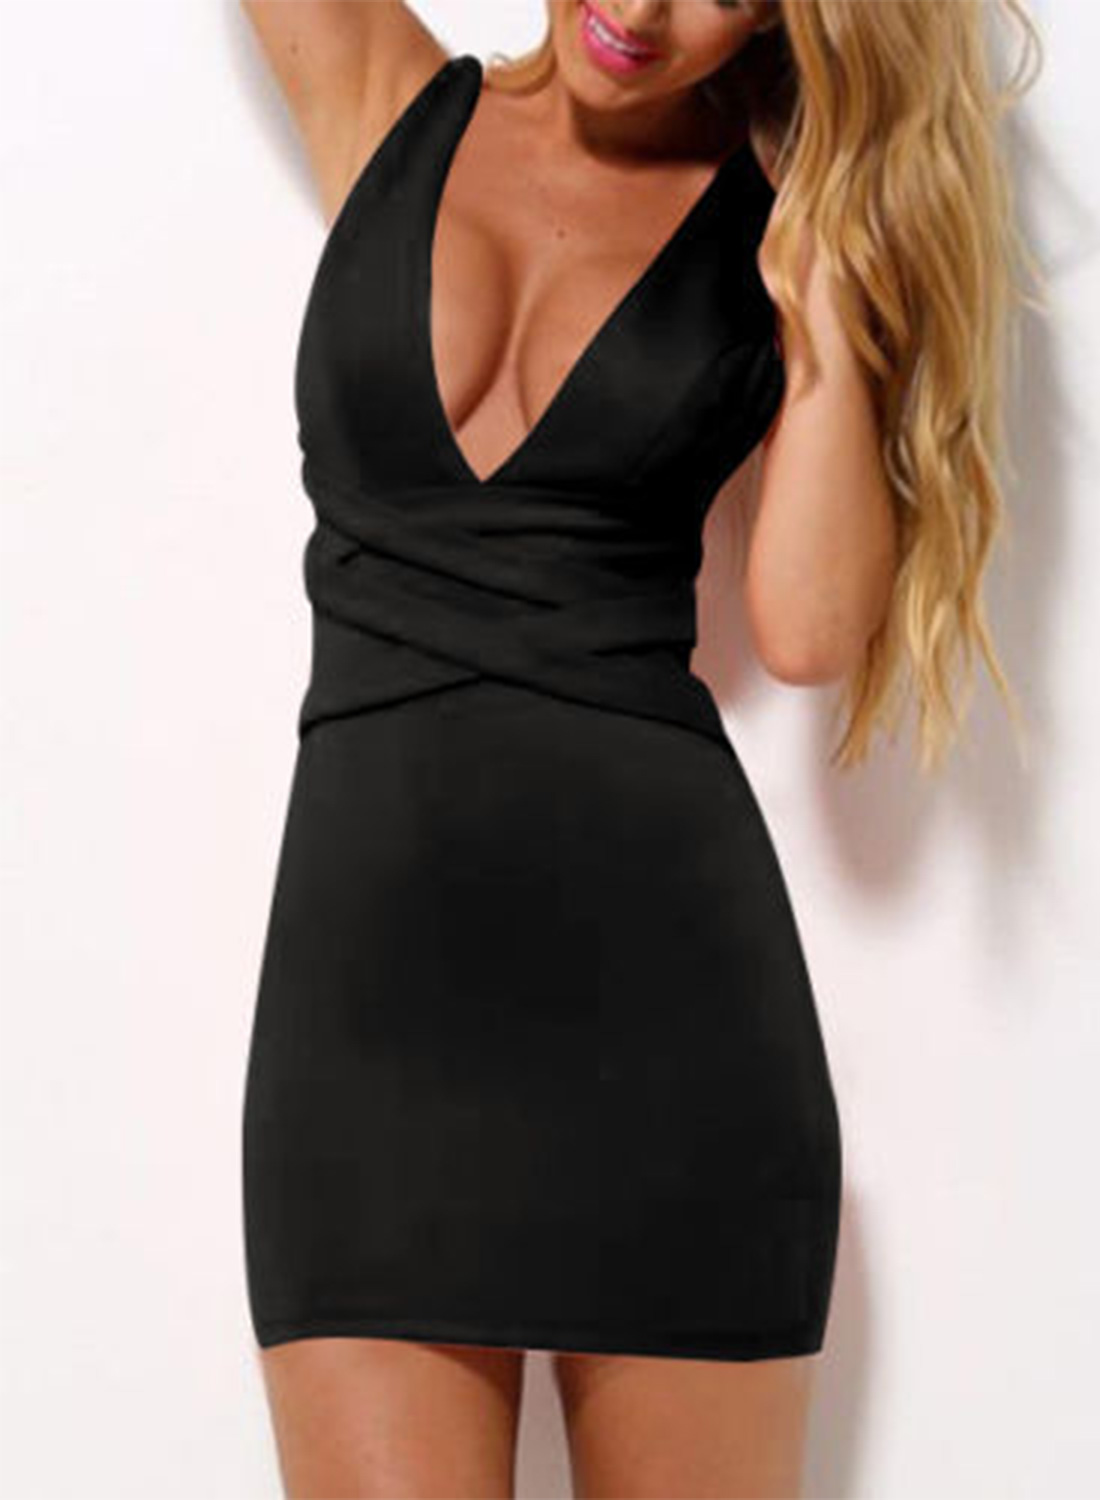 d979cbef5a0f Deep V Neck Sleeveless Bodycon Mini Dress STYLESIMO.com. Loading zoom